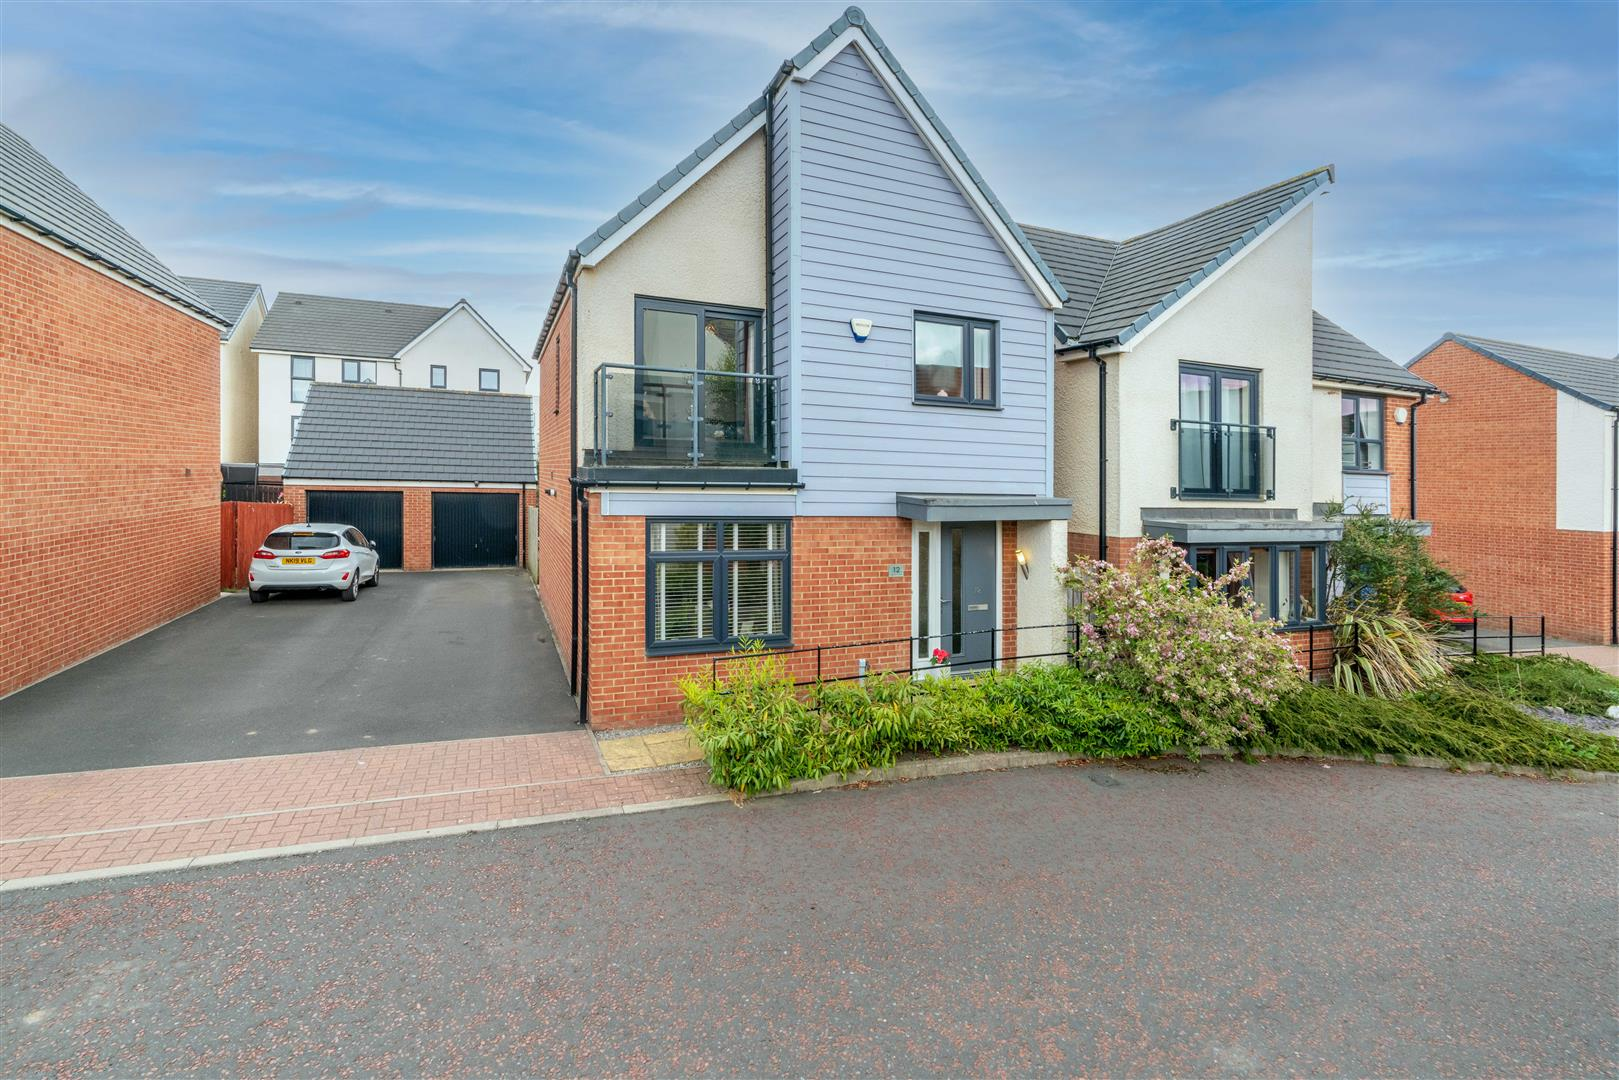 3 bed detached house for sale in Esperley Avenue, Great Park, NE13